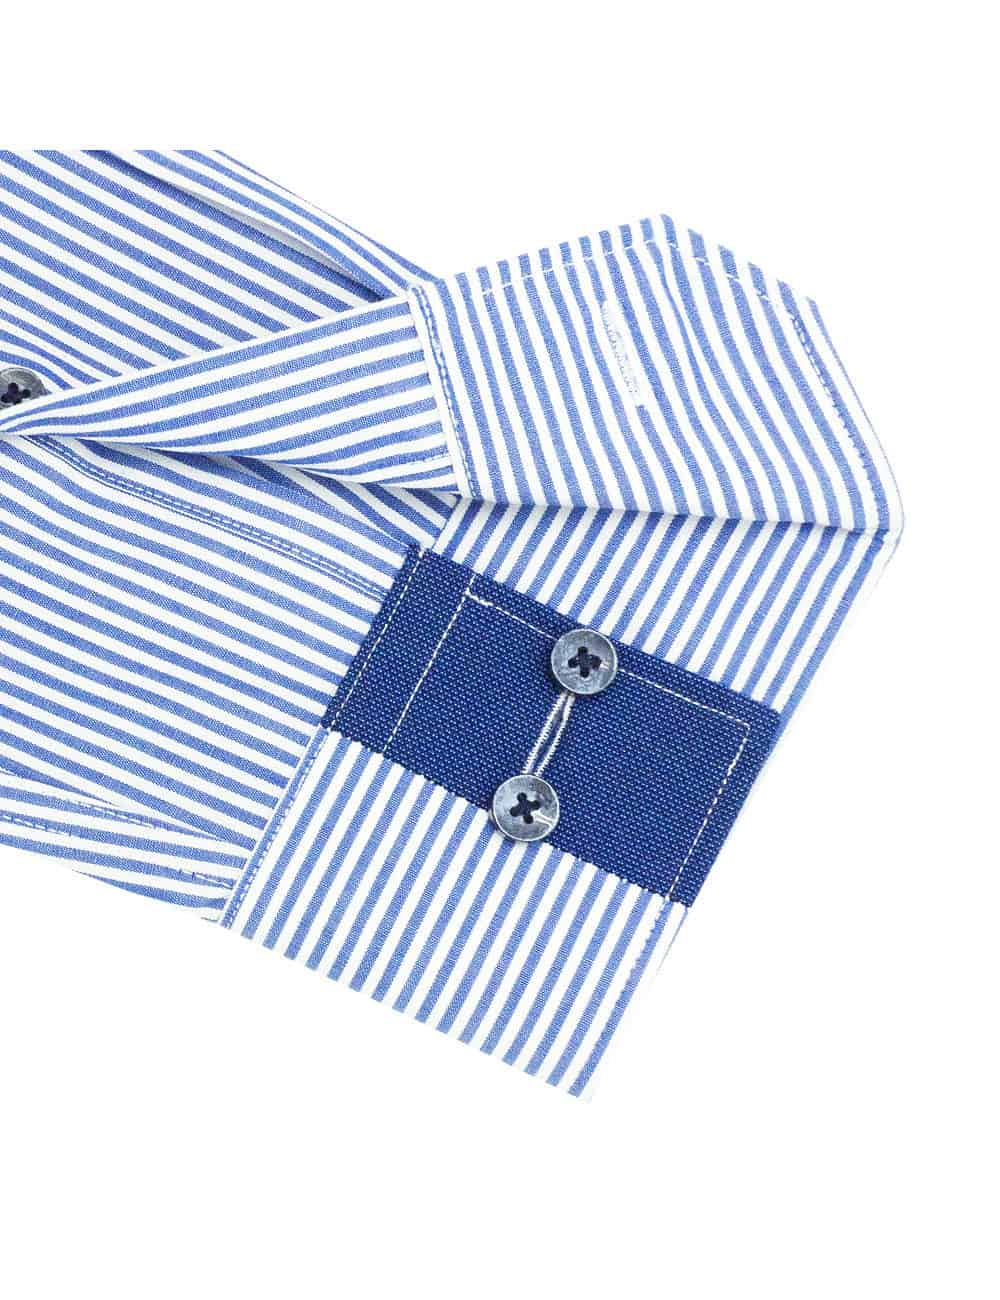 TF White and Blue Stripes Cotton Blend Spill Resist Long Sleeve Single Cuff Shirt TF2F5.16